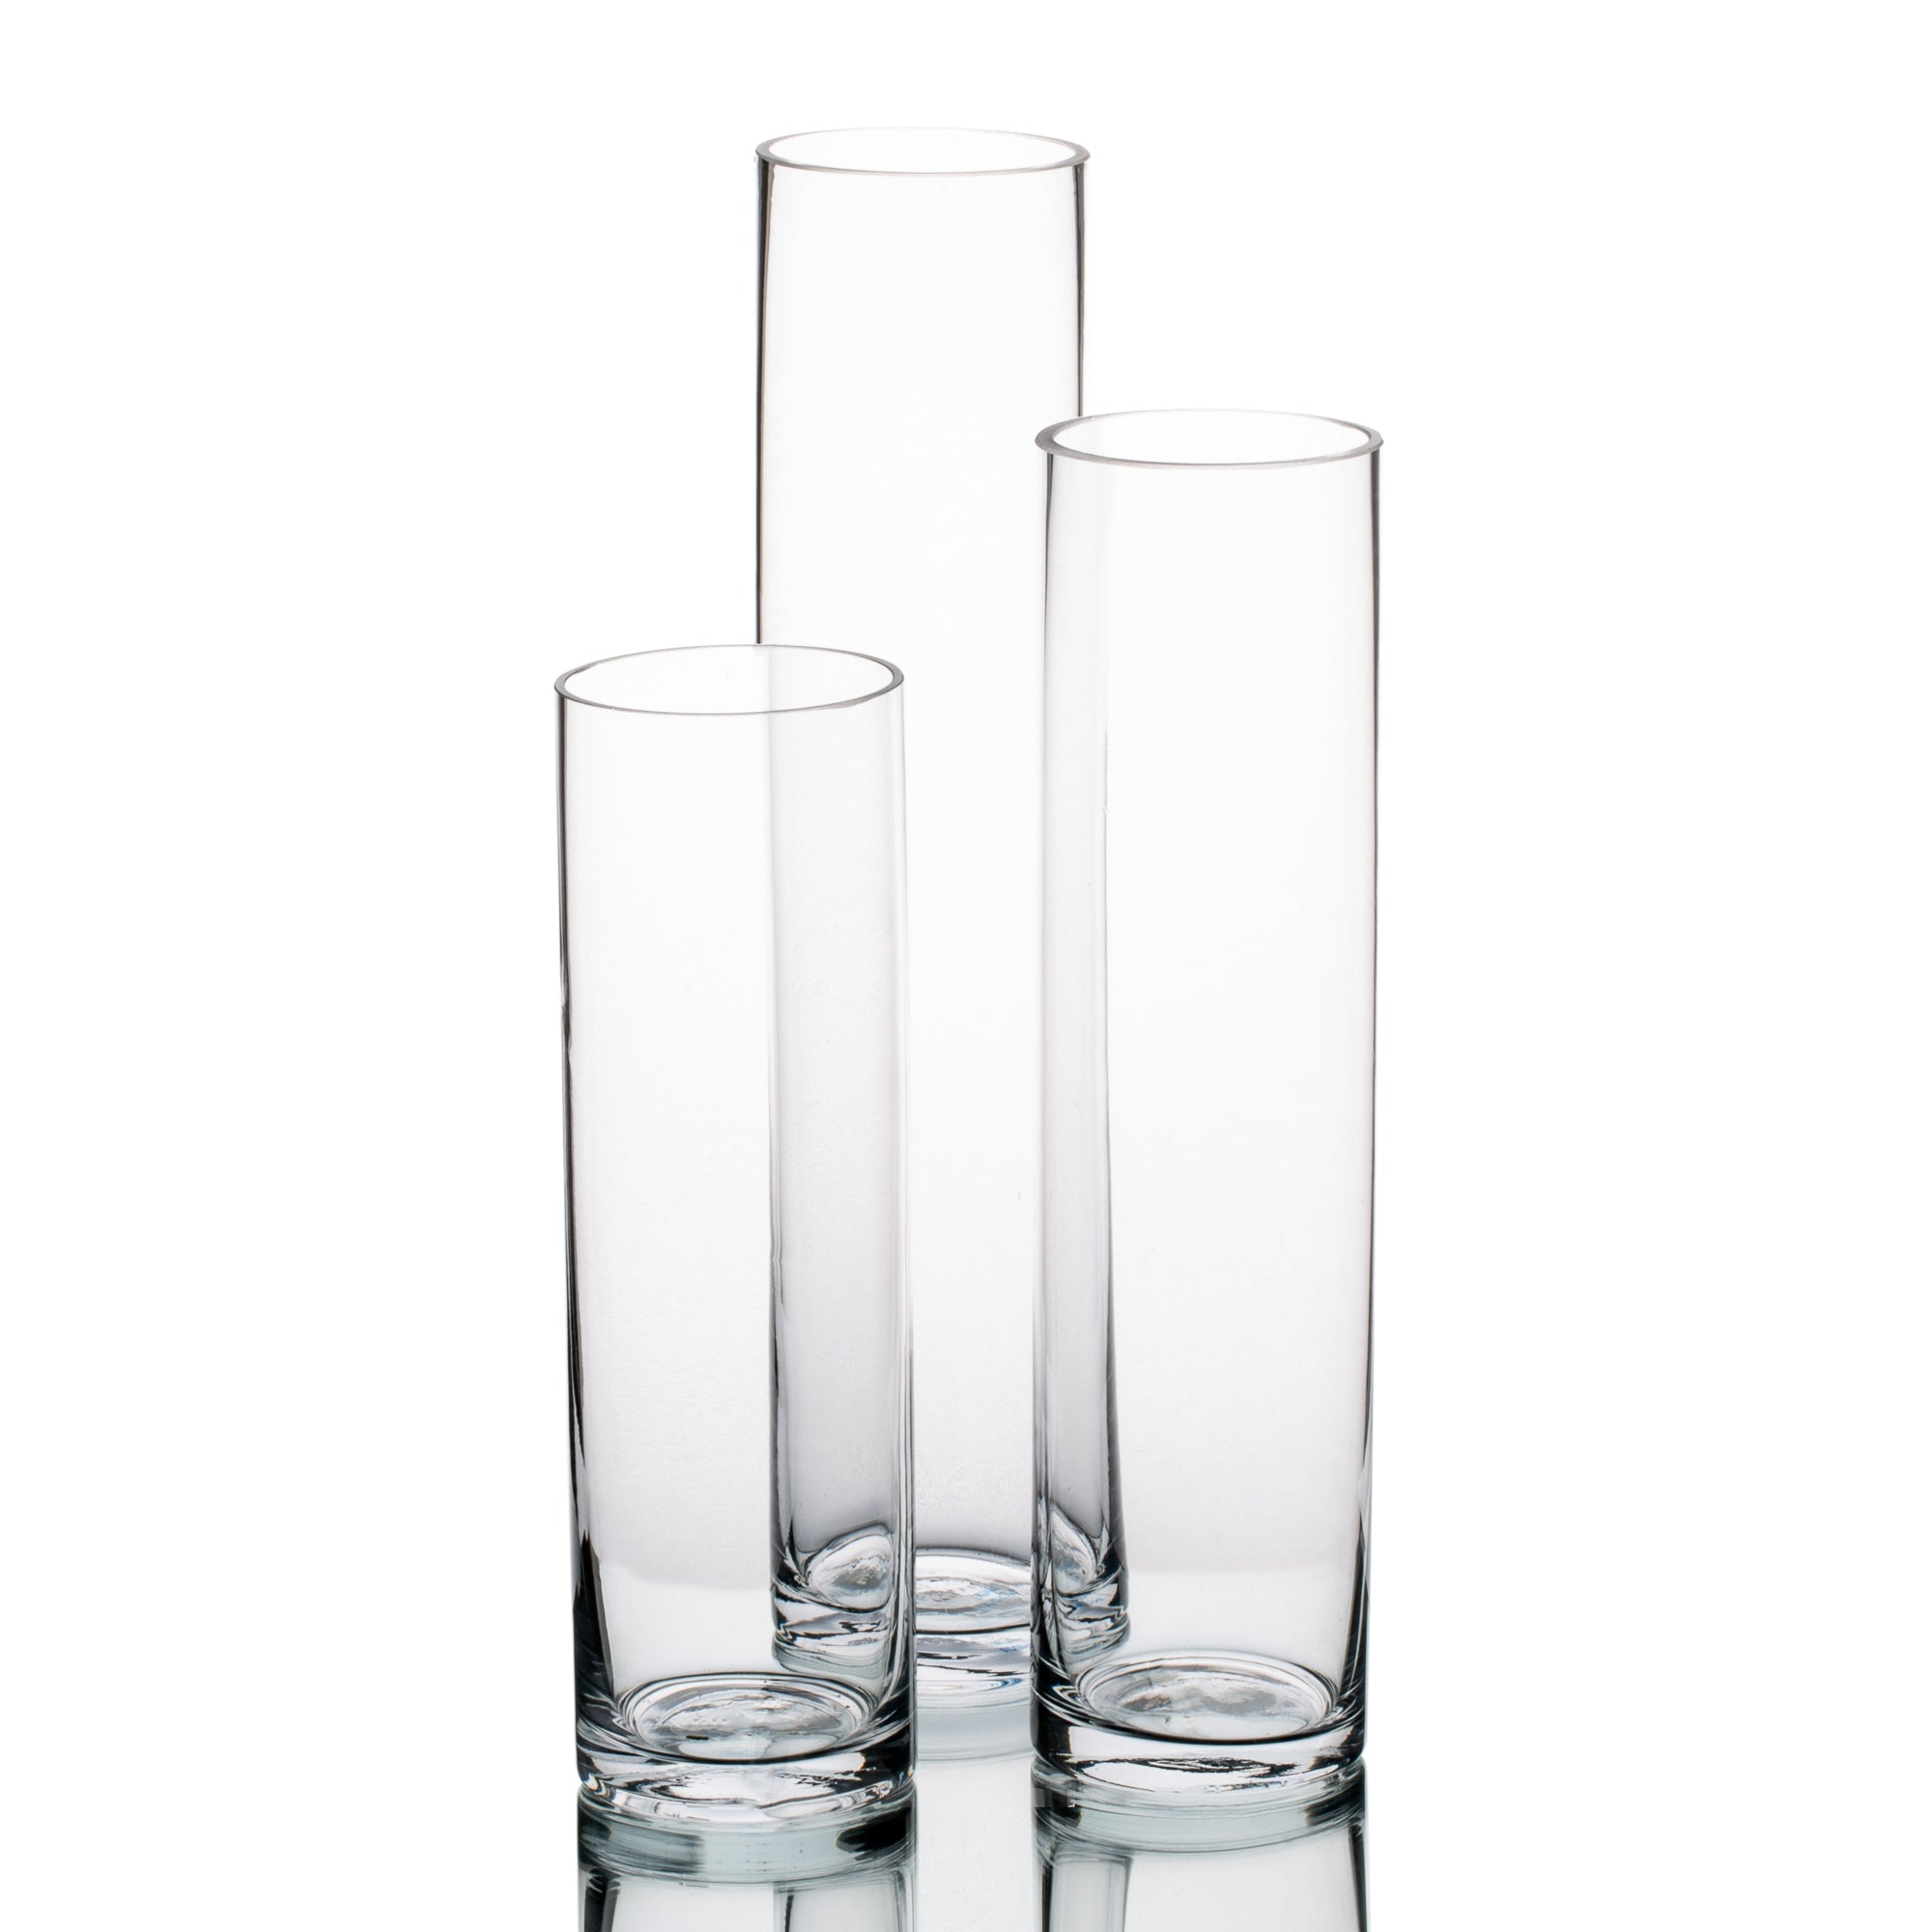 richland sloan cylinder vase 9 75 11 75 13 75 set of 3